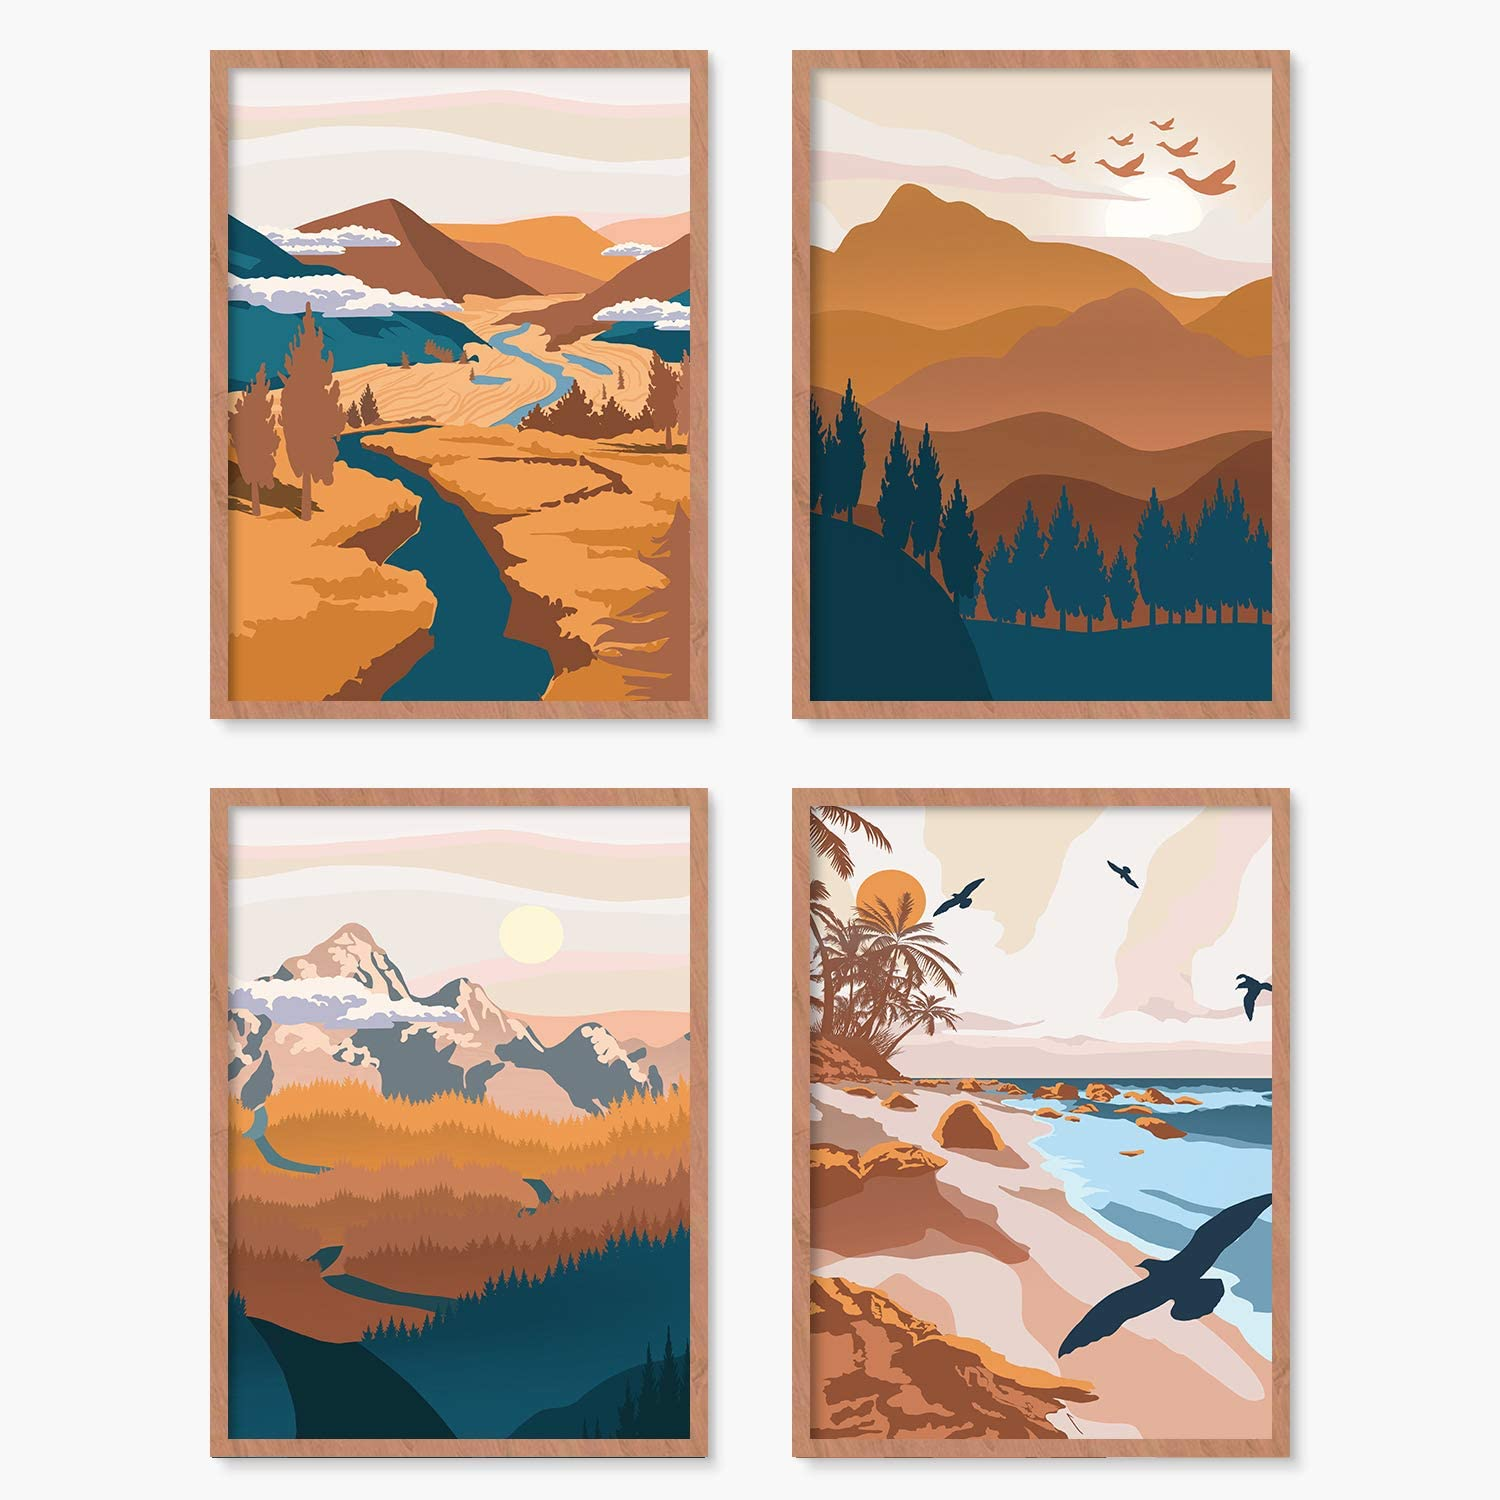 YUMKNOW Boho Mountain Wall Decor - Umframed 8x10 Set of 4, Vintage Mid Century Modern Art for Bedroom, Minimalist Nature Wall Postes Prints for Living Room, Terracotta Aesthetic Bathroom Office Gifts